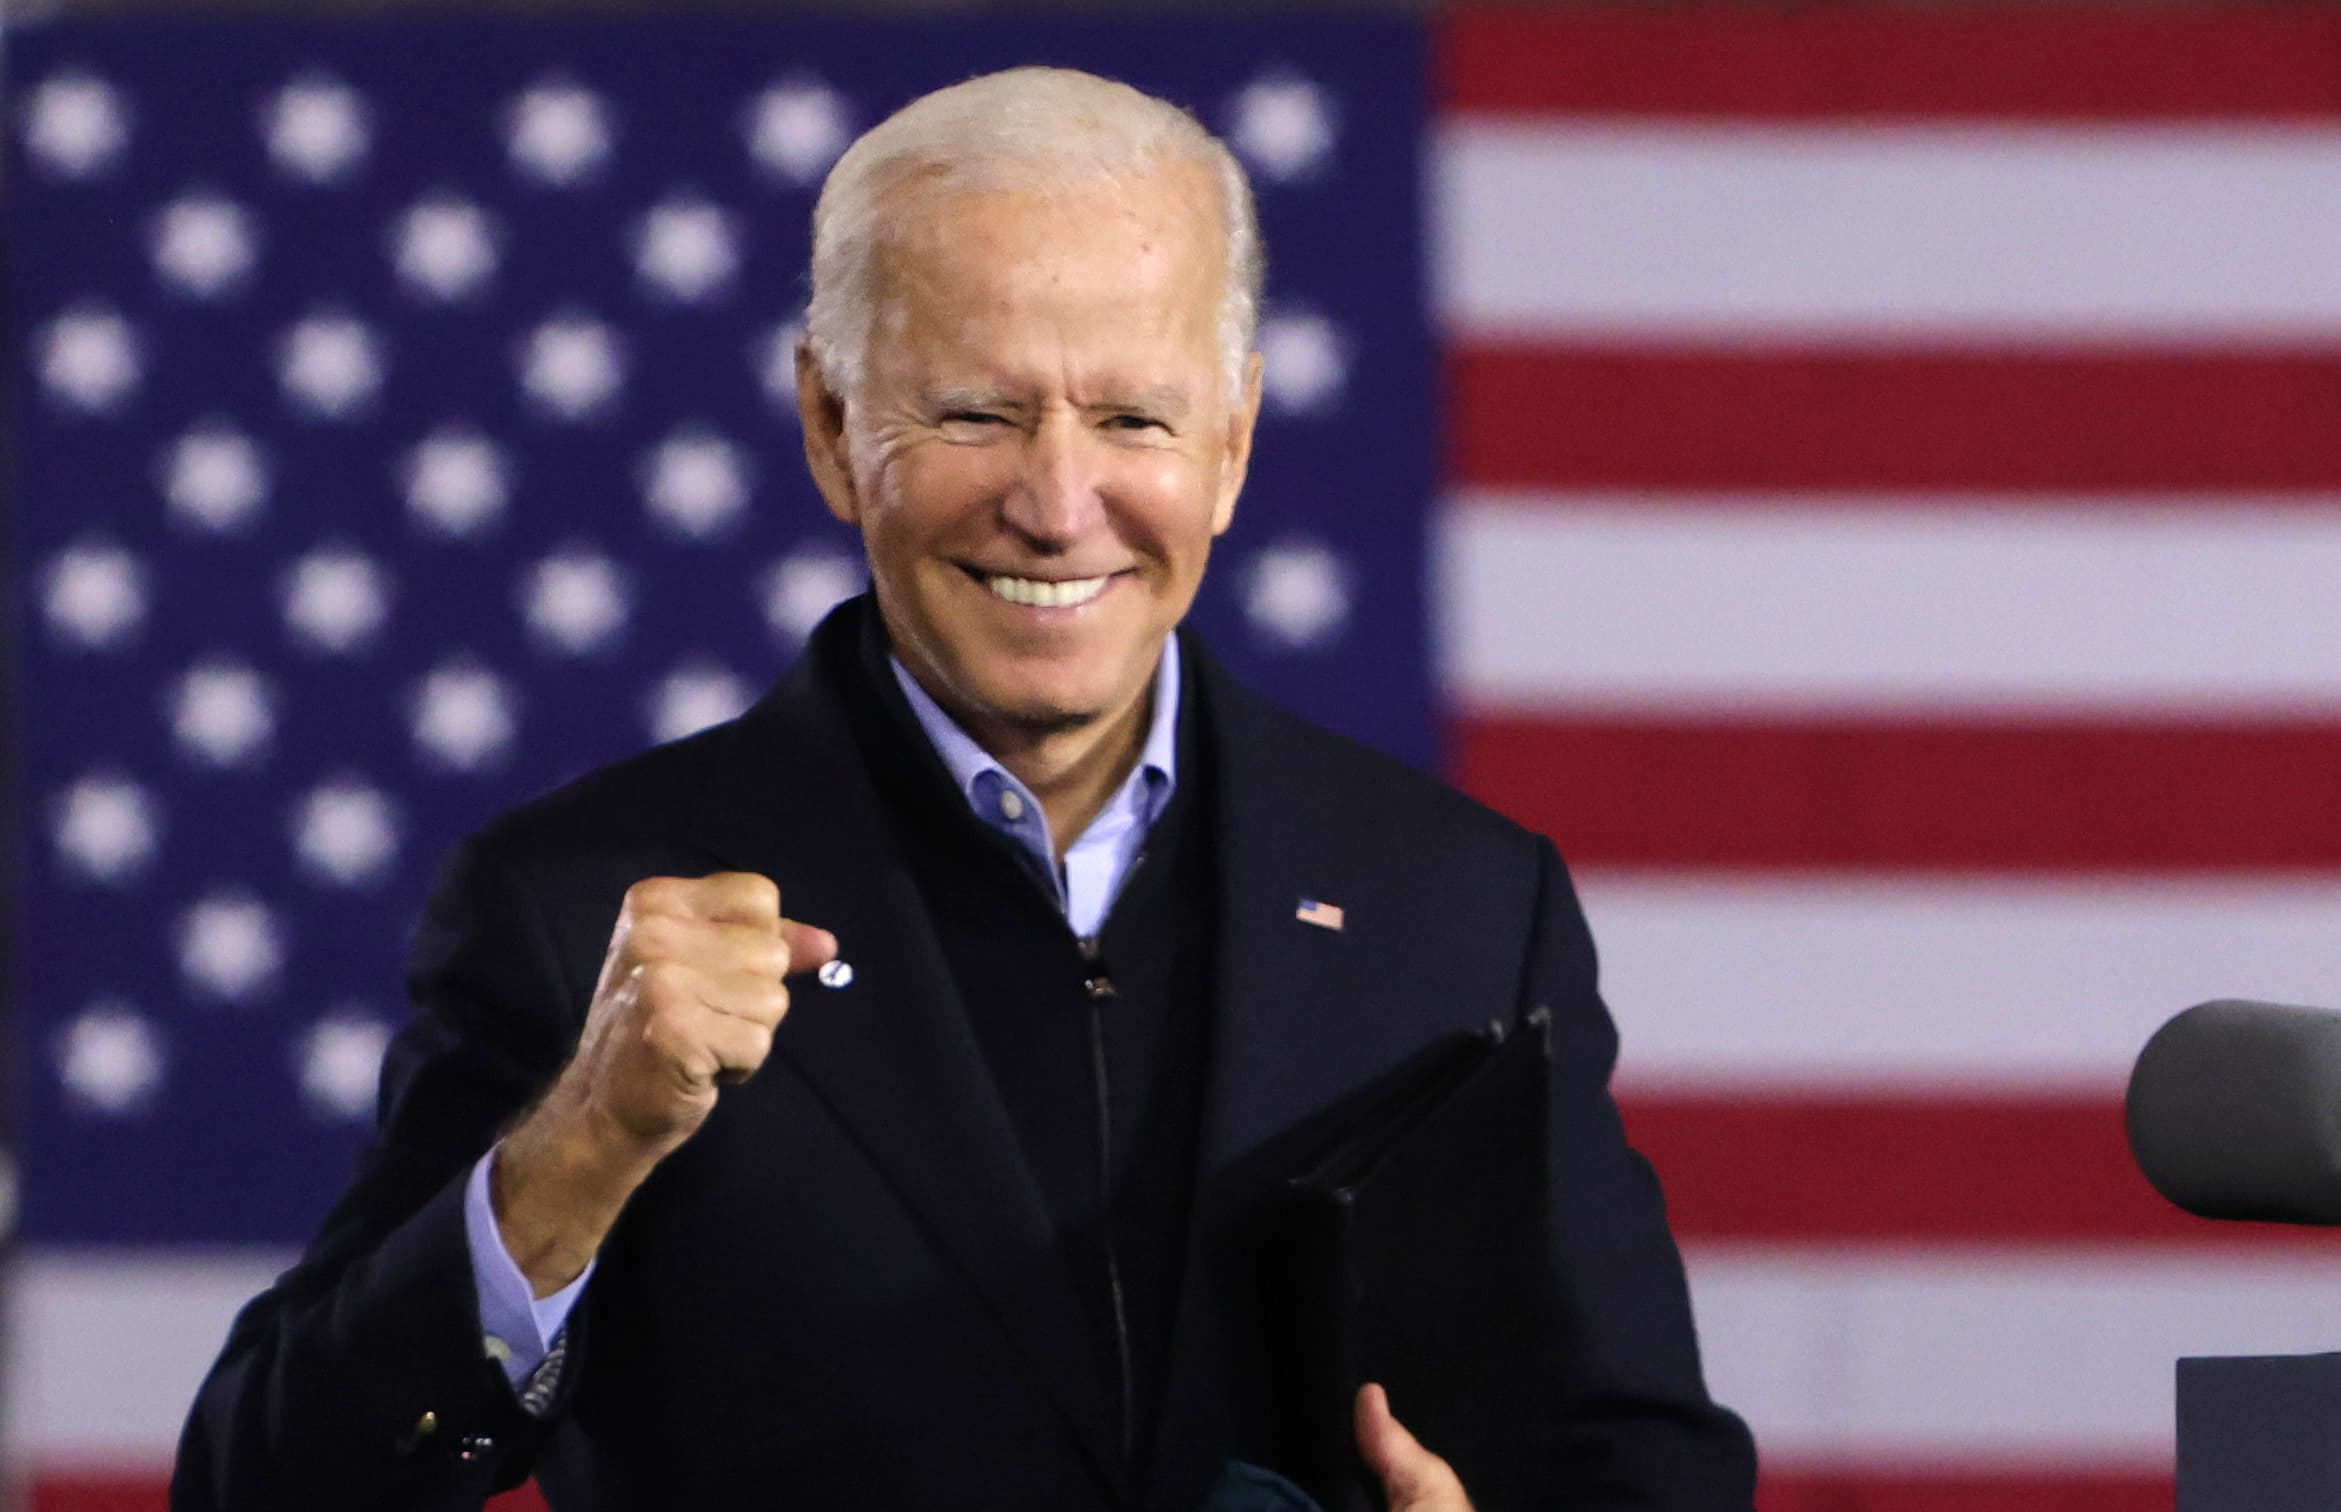 Joe Biden projected to defeat Donald Trump in the presidential election